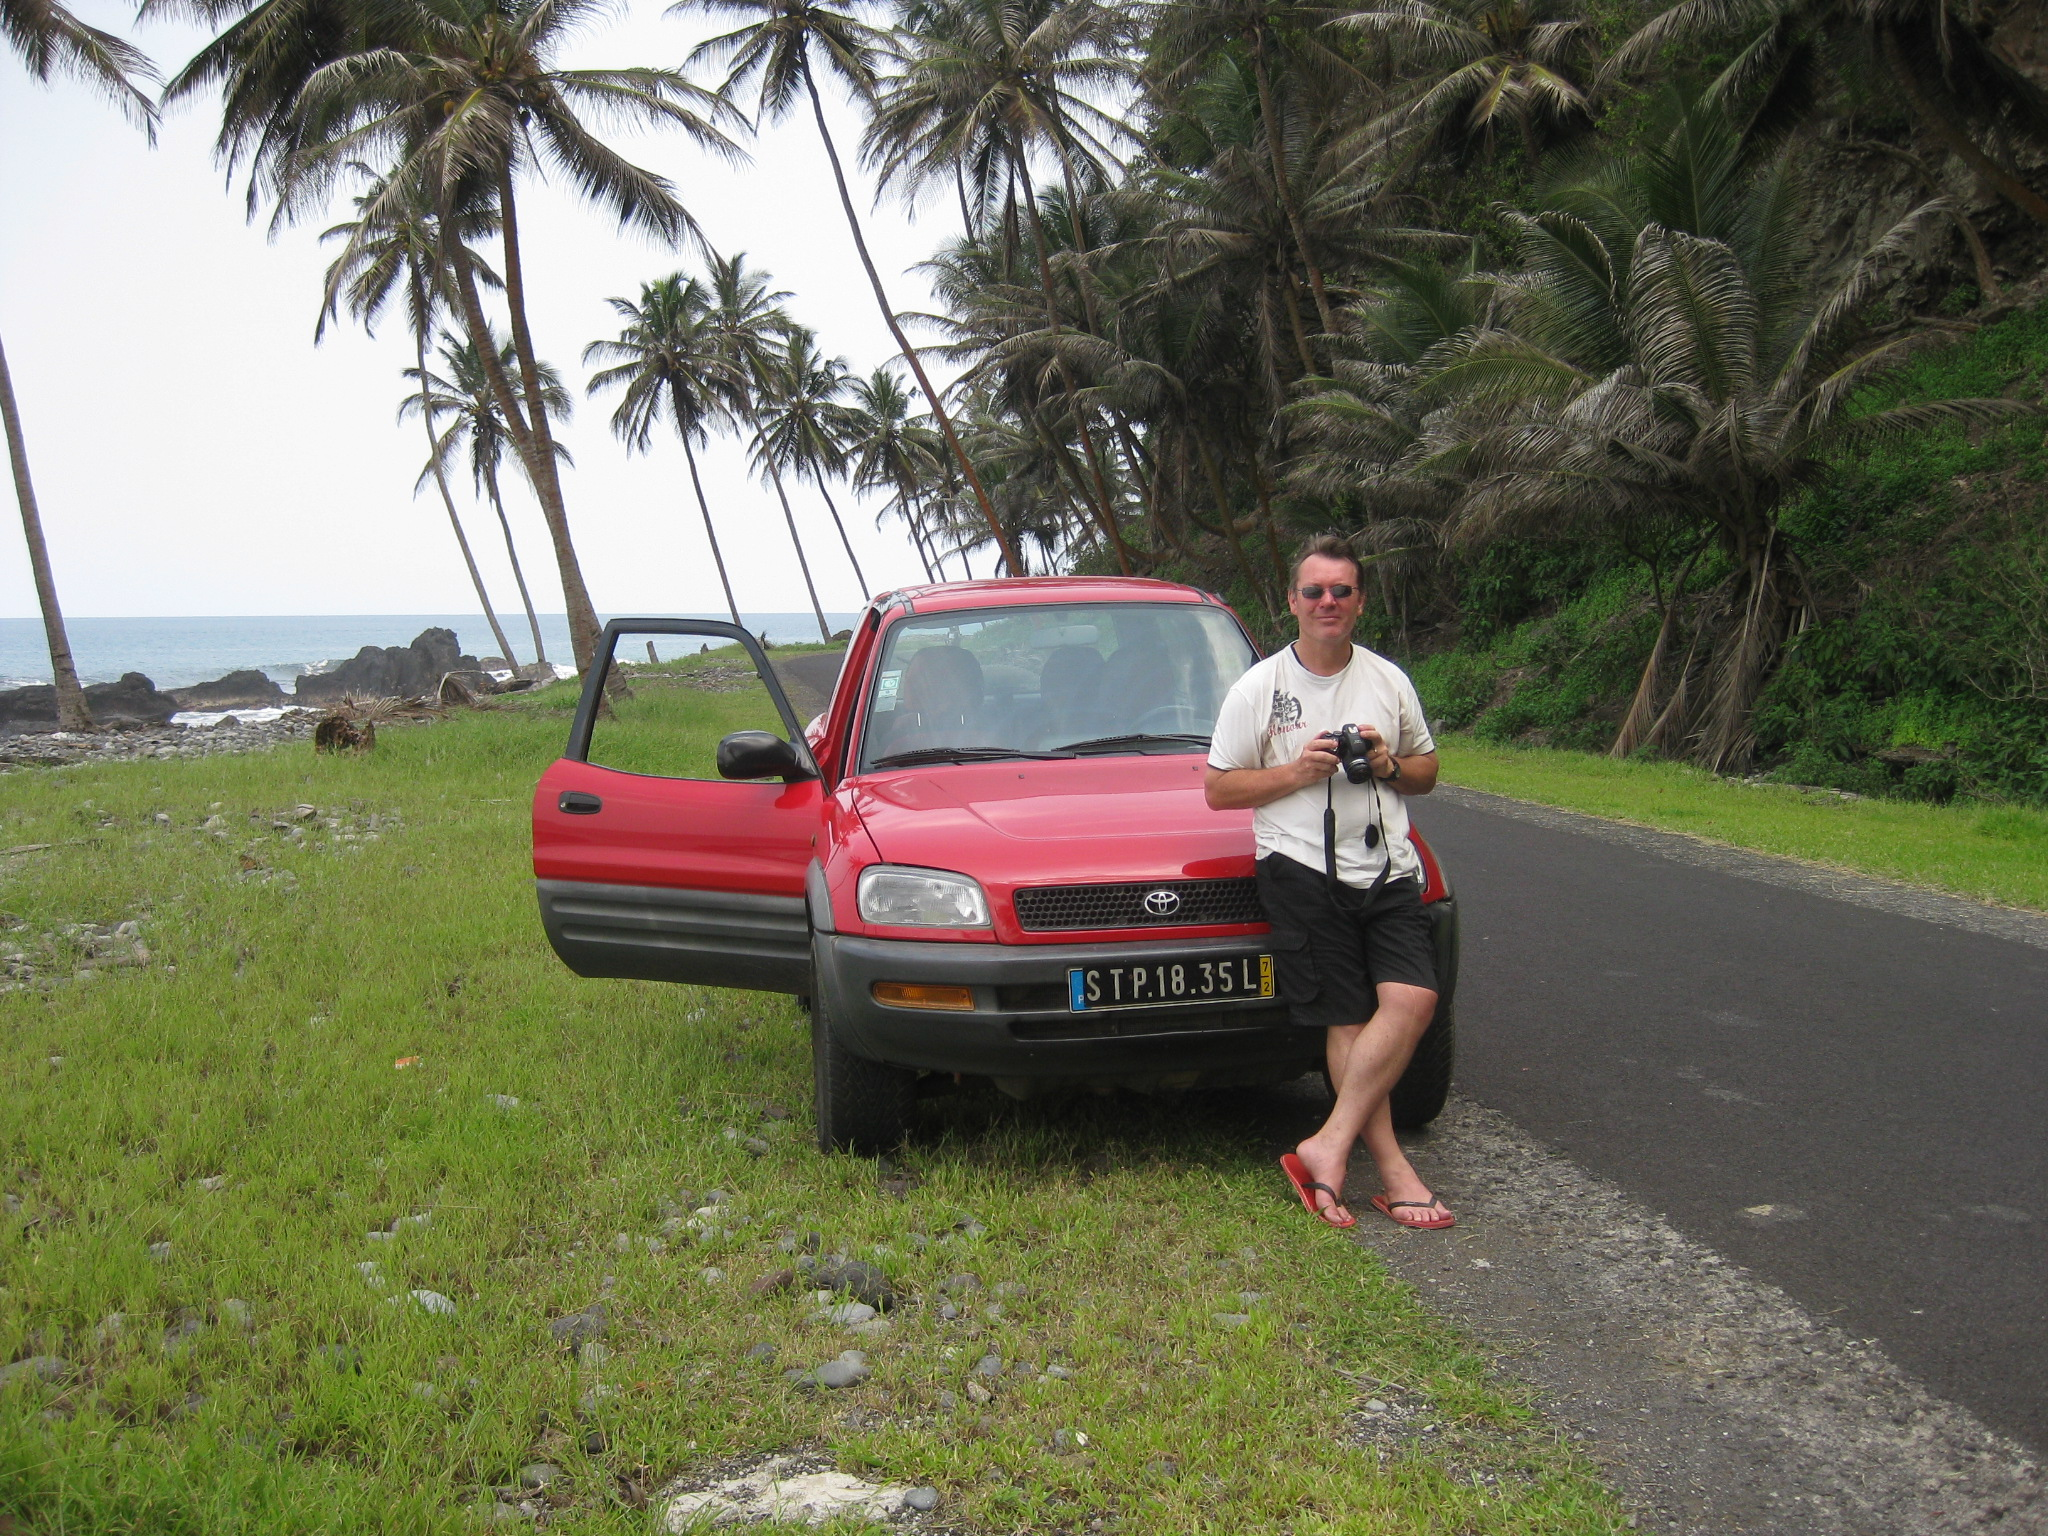 cruising the island in our hire car